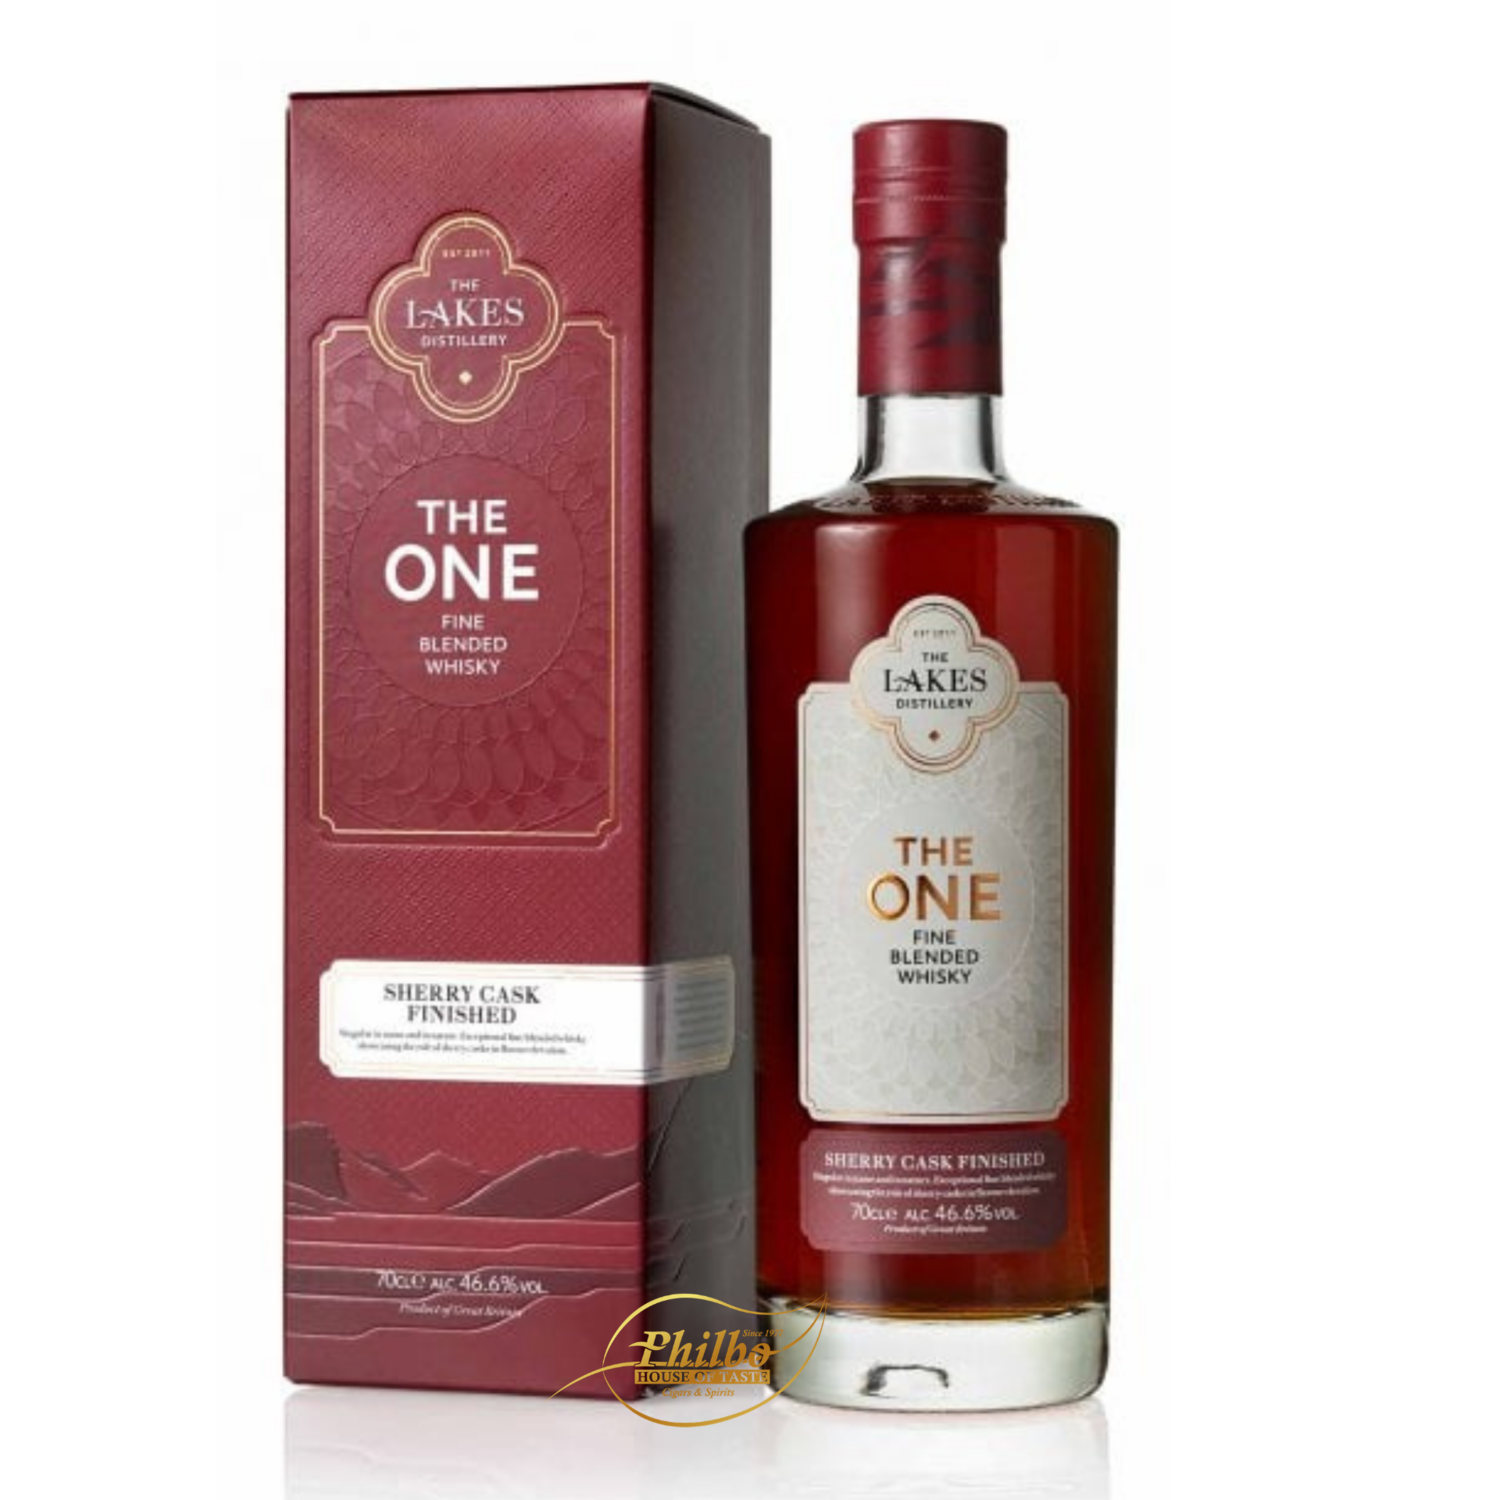 The Lakes - The One Sherry Cask Finished 46,6% - 70cl